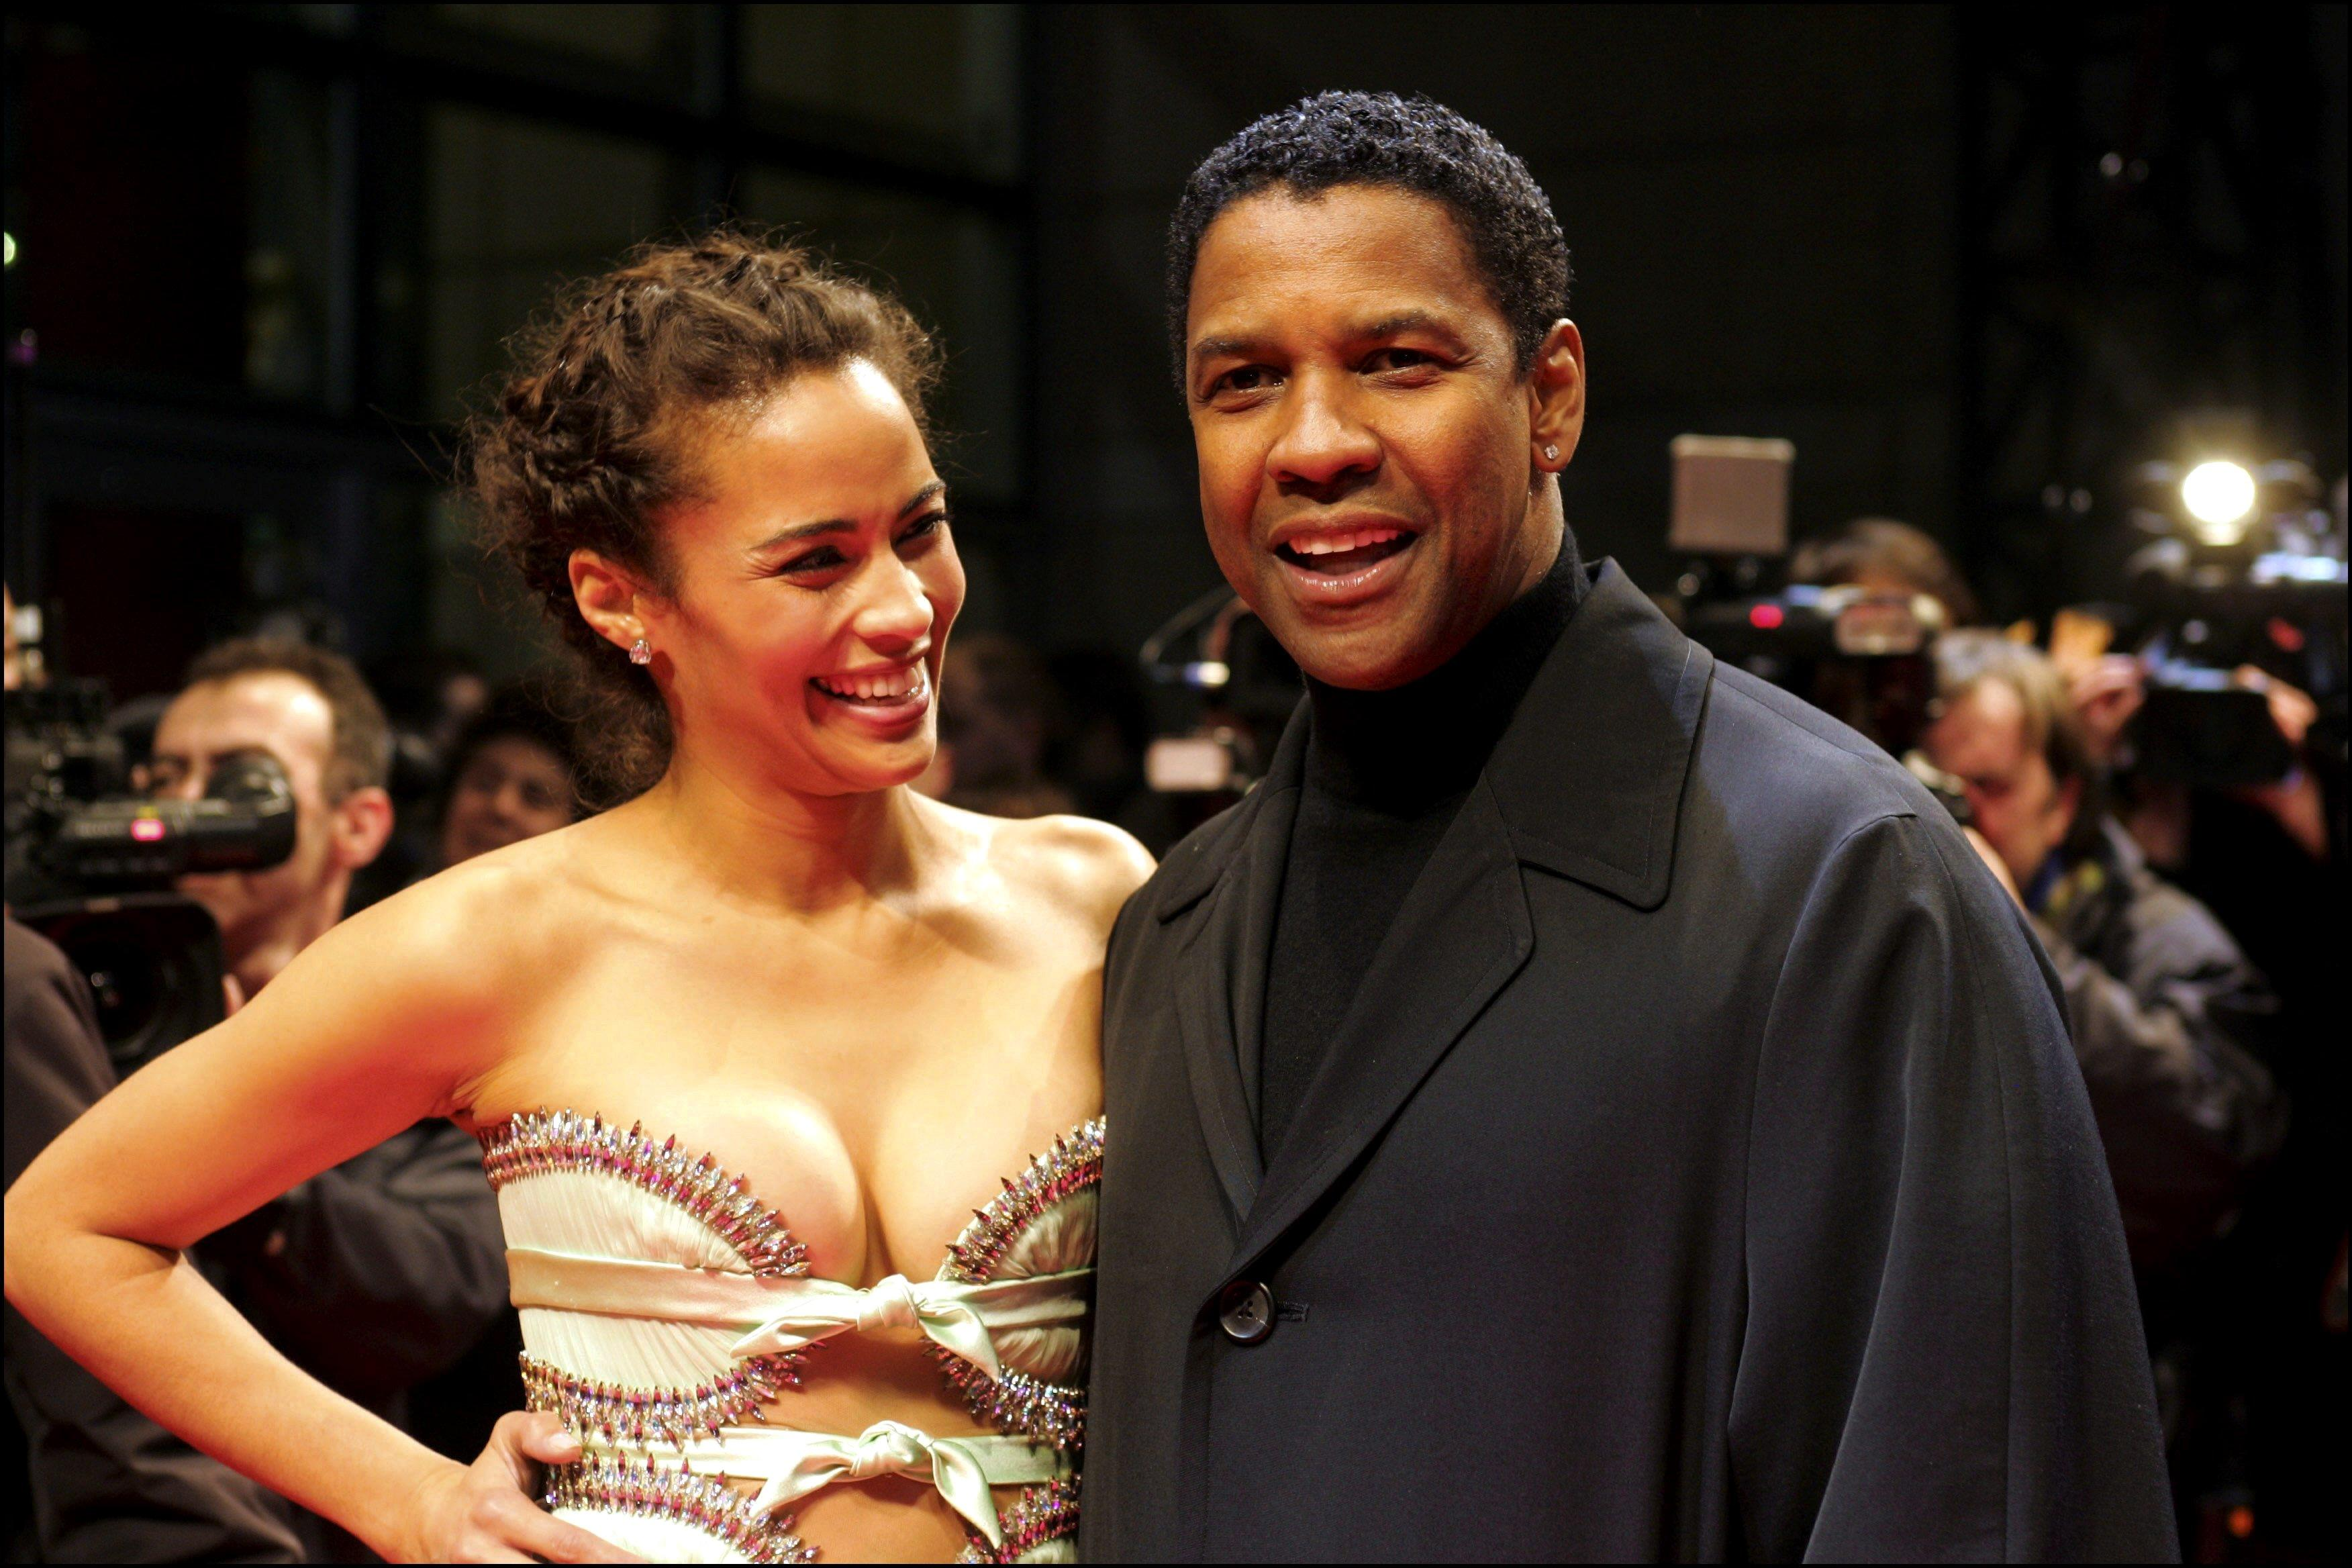 Denzel Washington, Paula Patton, Tony Scot and Jerry Bruckheimer present their new movie ' Deja Vu ' at the cinema Kinepolis of Lomme, in the north of France in Lomme, France on December 06, 2006